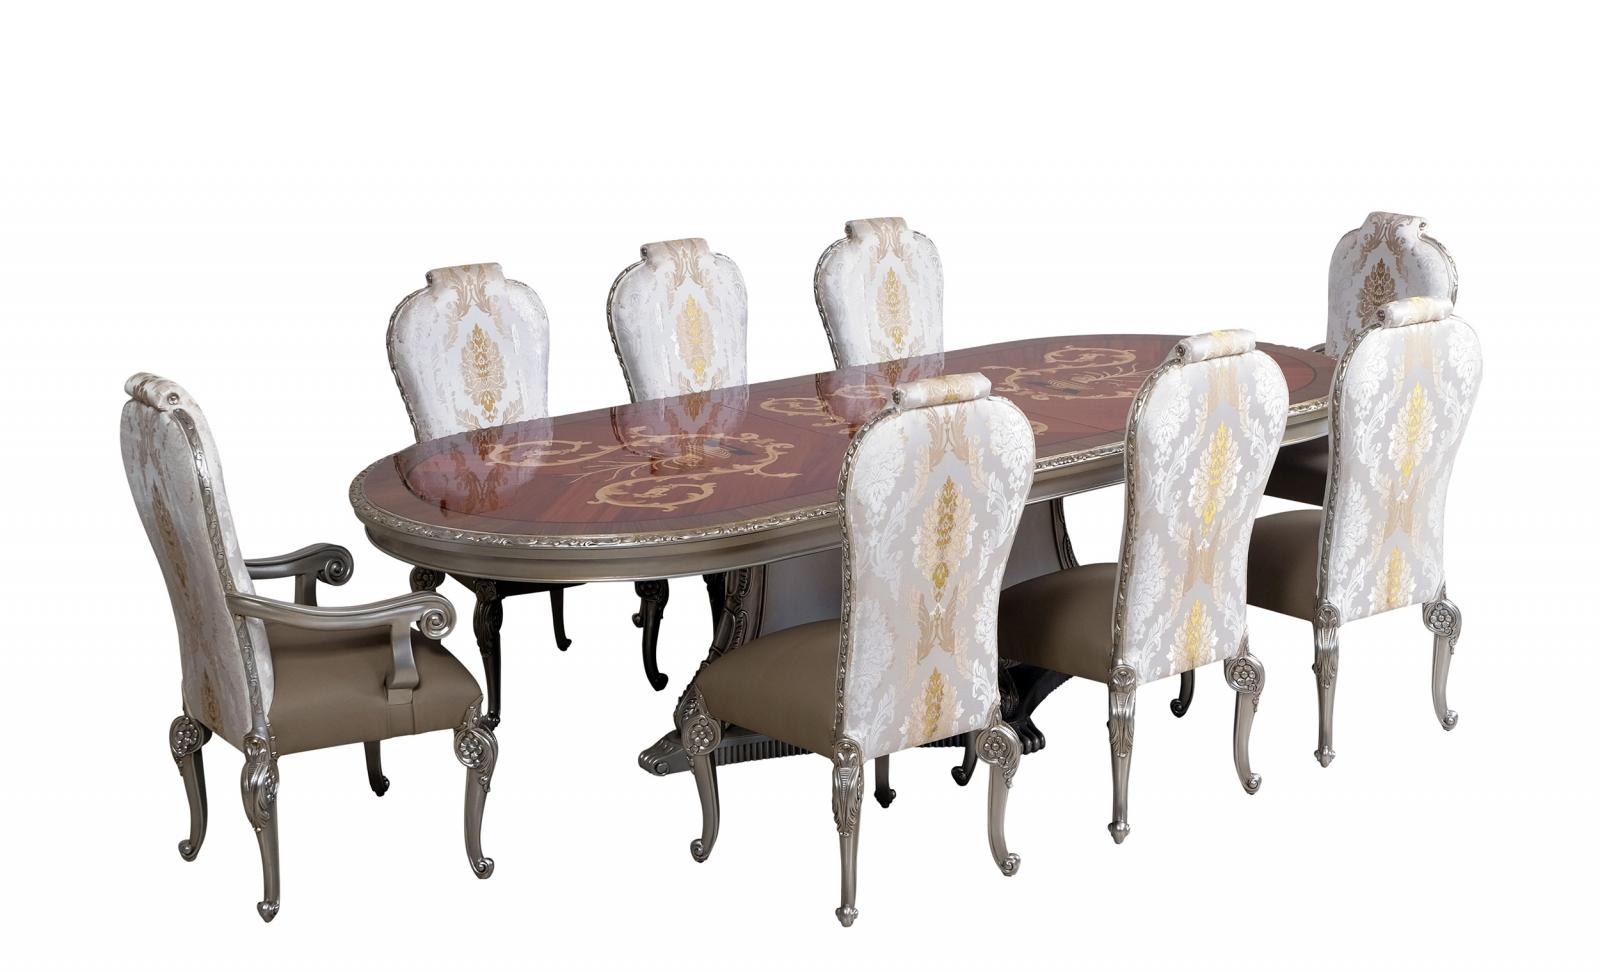 Contemporary, Modern Gold, Ebony, Antique Silver Leather and Fabric, Wood, Solid Hardwood Dining Table Set 9 pcs BELLAGIO by European Furniture